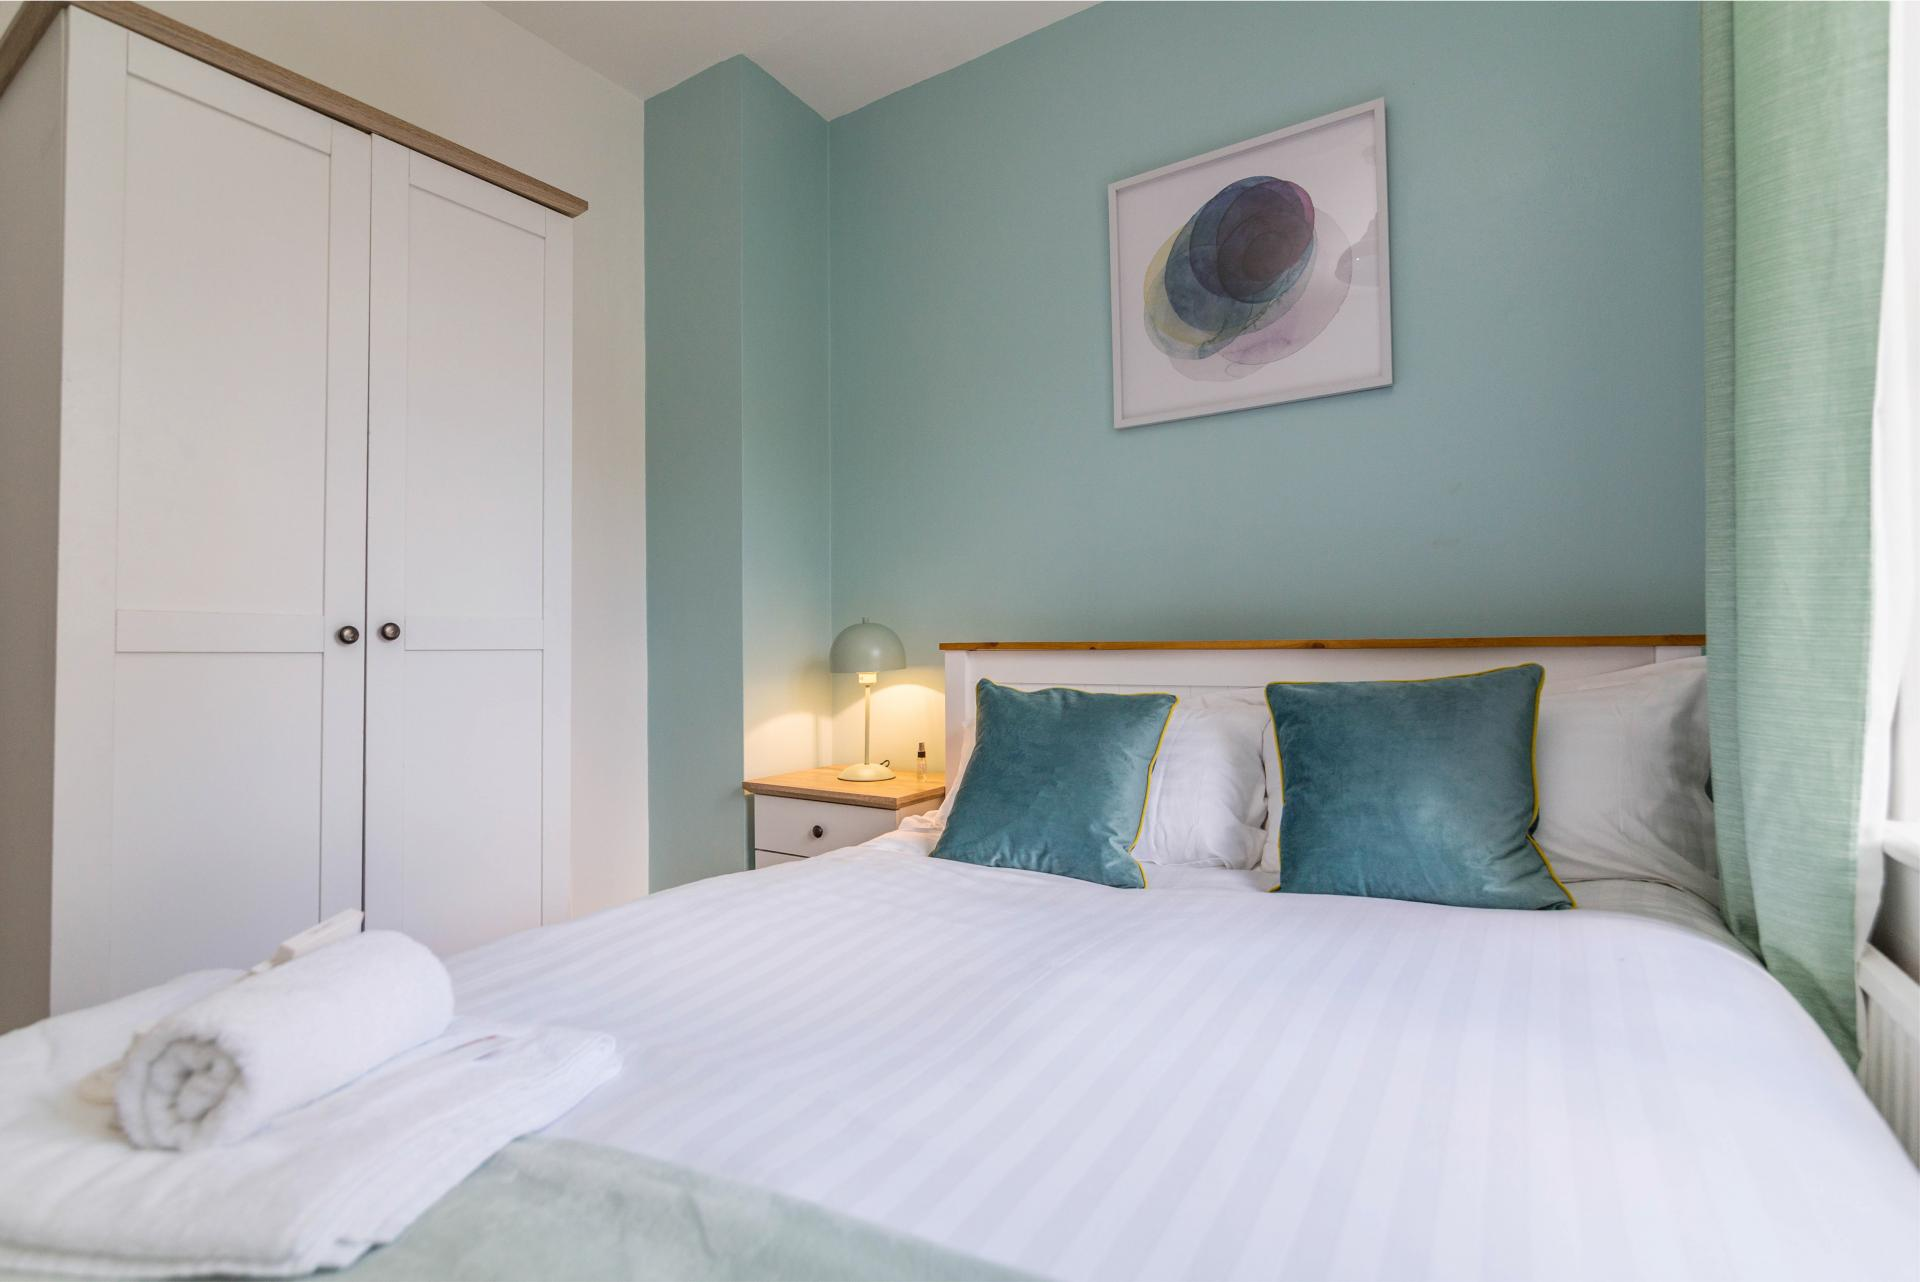 Double bed at Mapperley House, Mapperley Park, Nottingham - Citybase Apartments